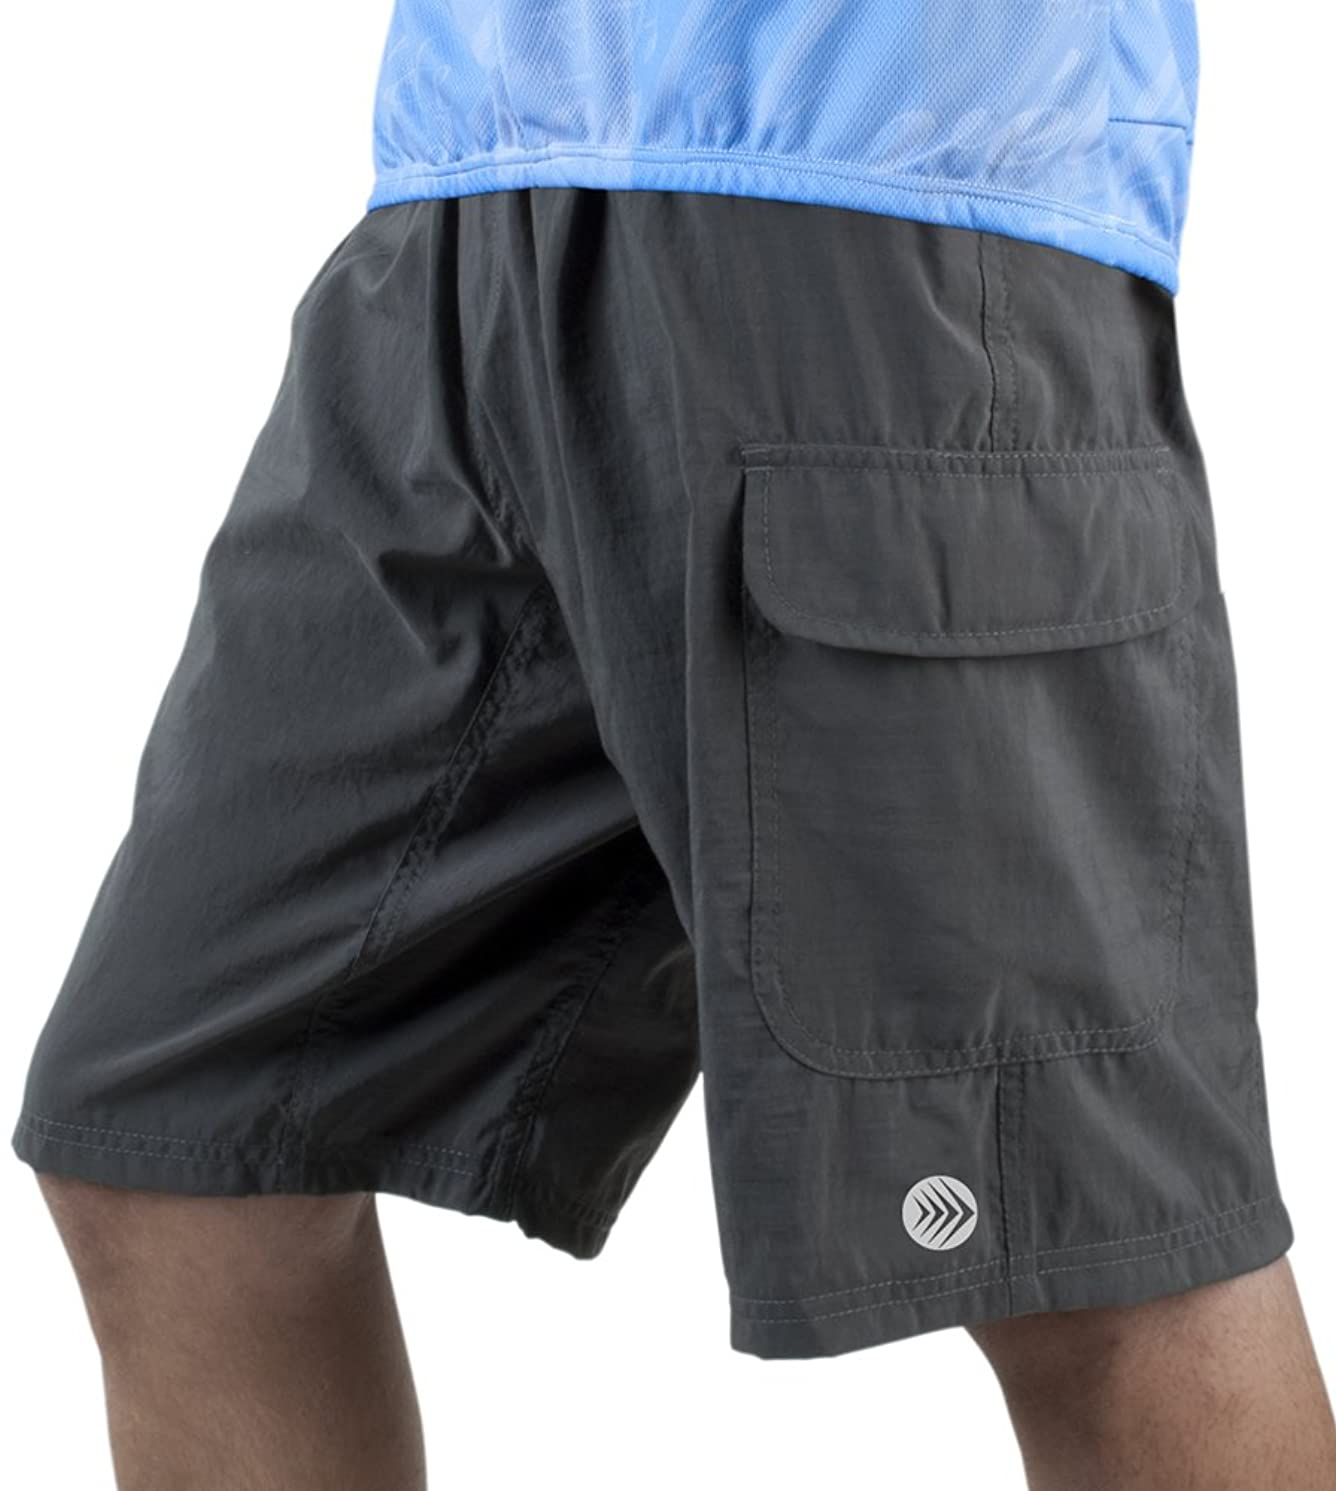 Men's ATD Cargo Cycling Short - Baggy Padded Mountain Bike Shorts evdk29240787505